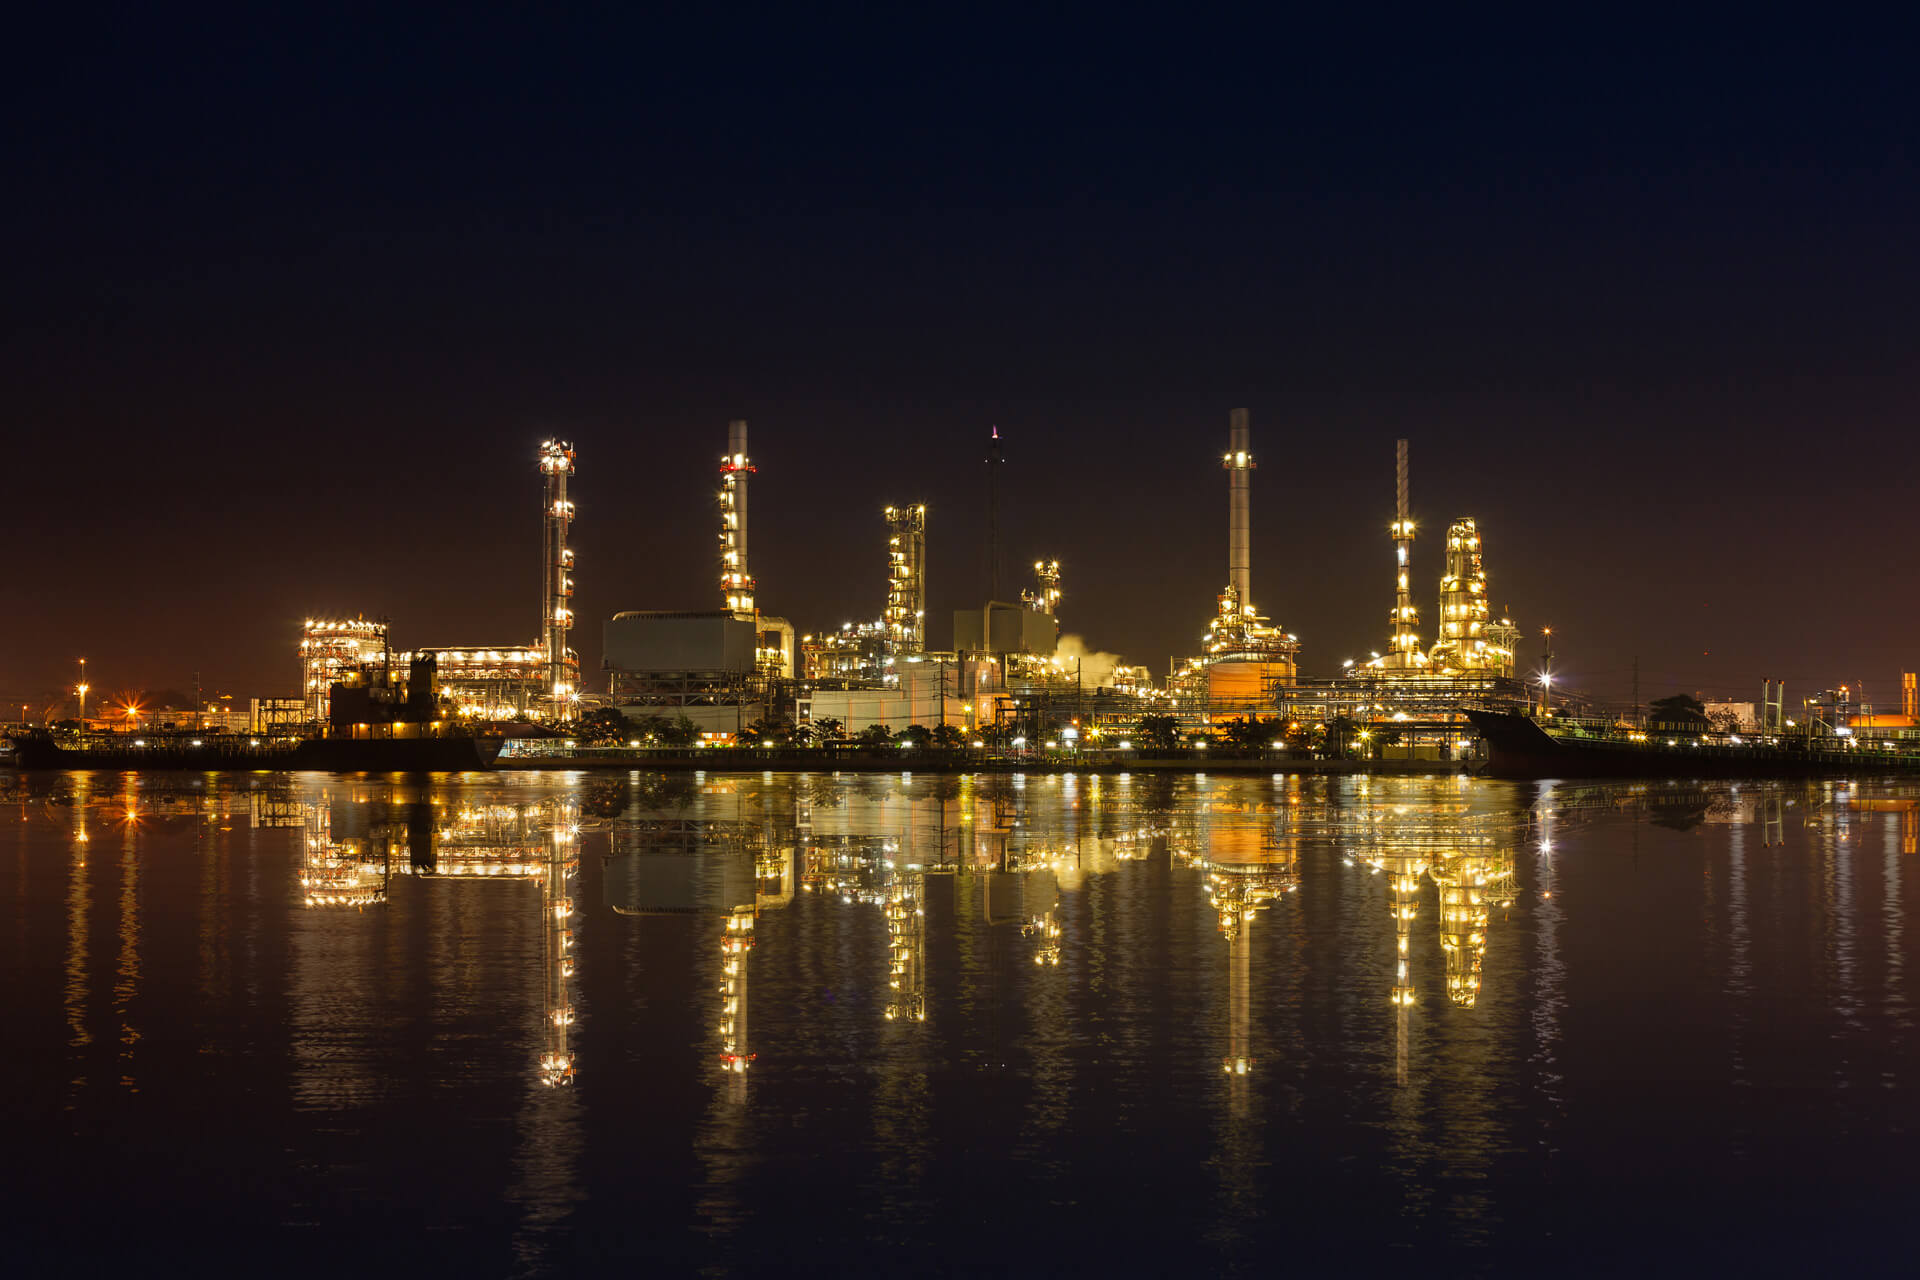 The Oil and Gas Industry uses ERA's software solutions.